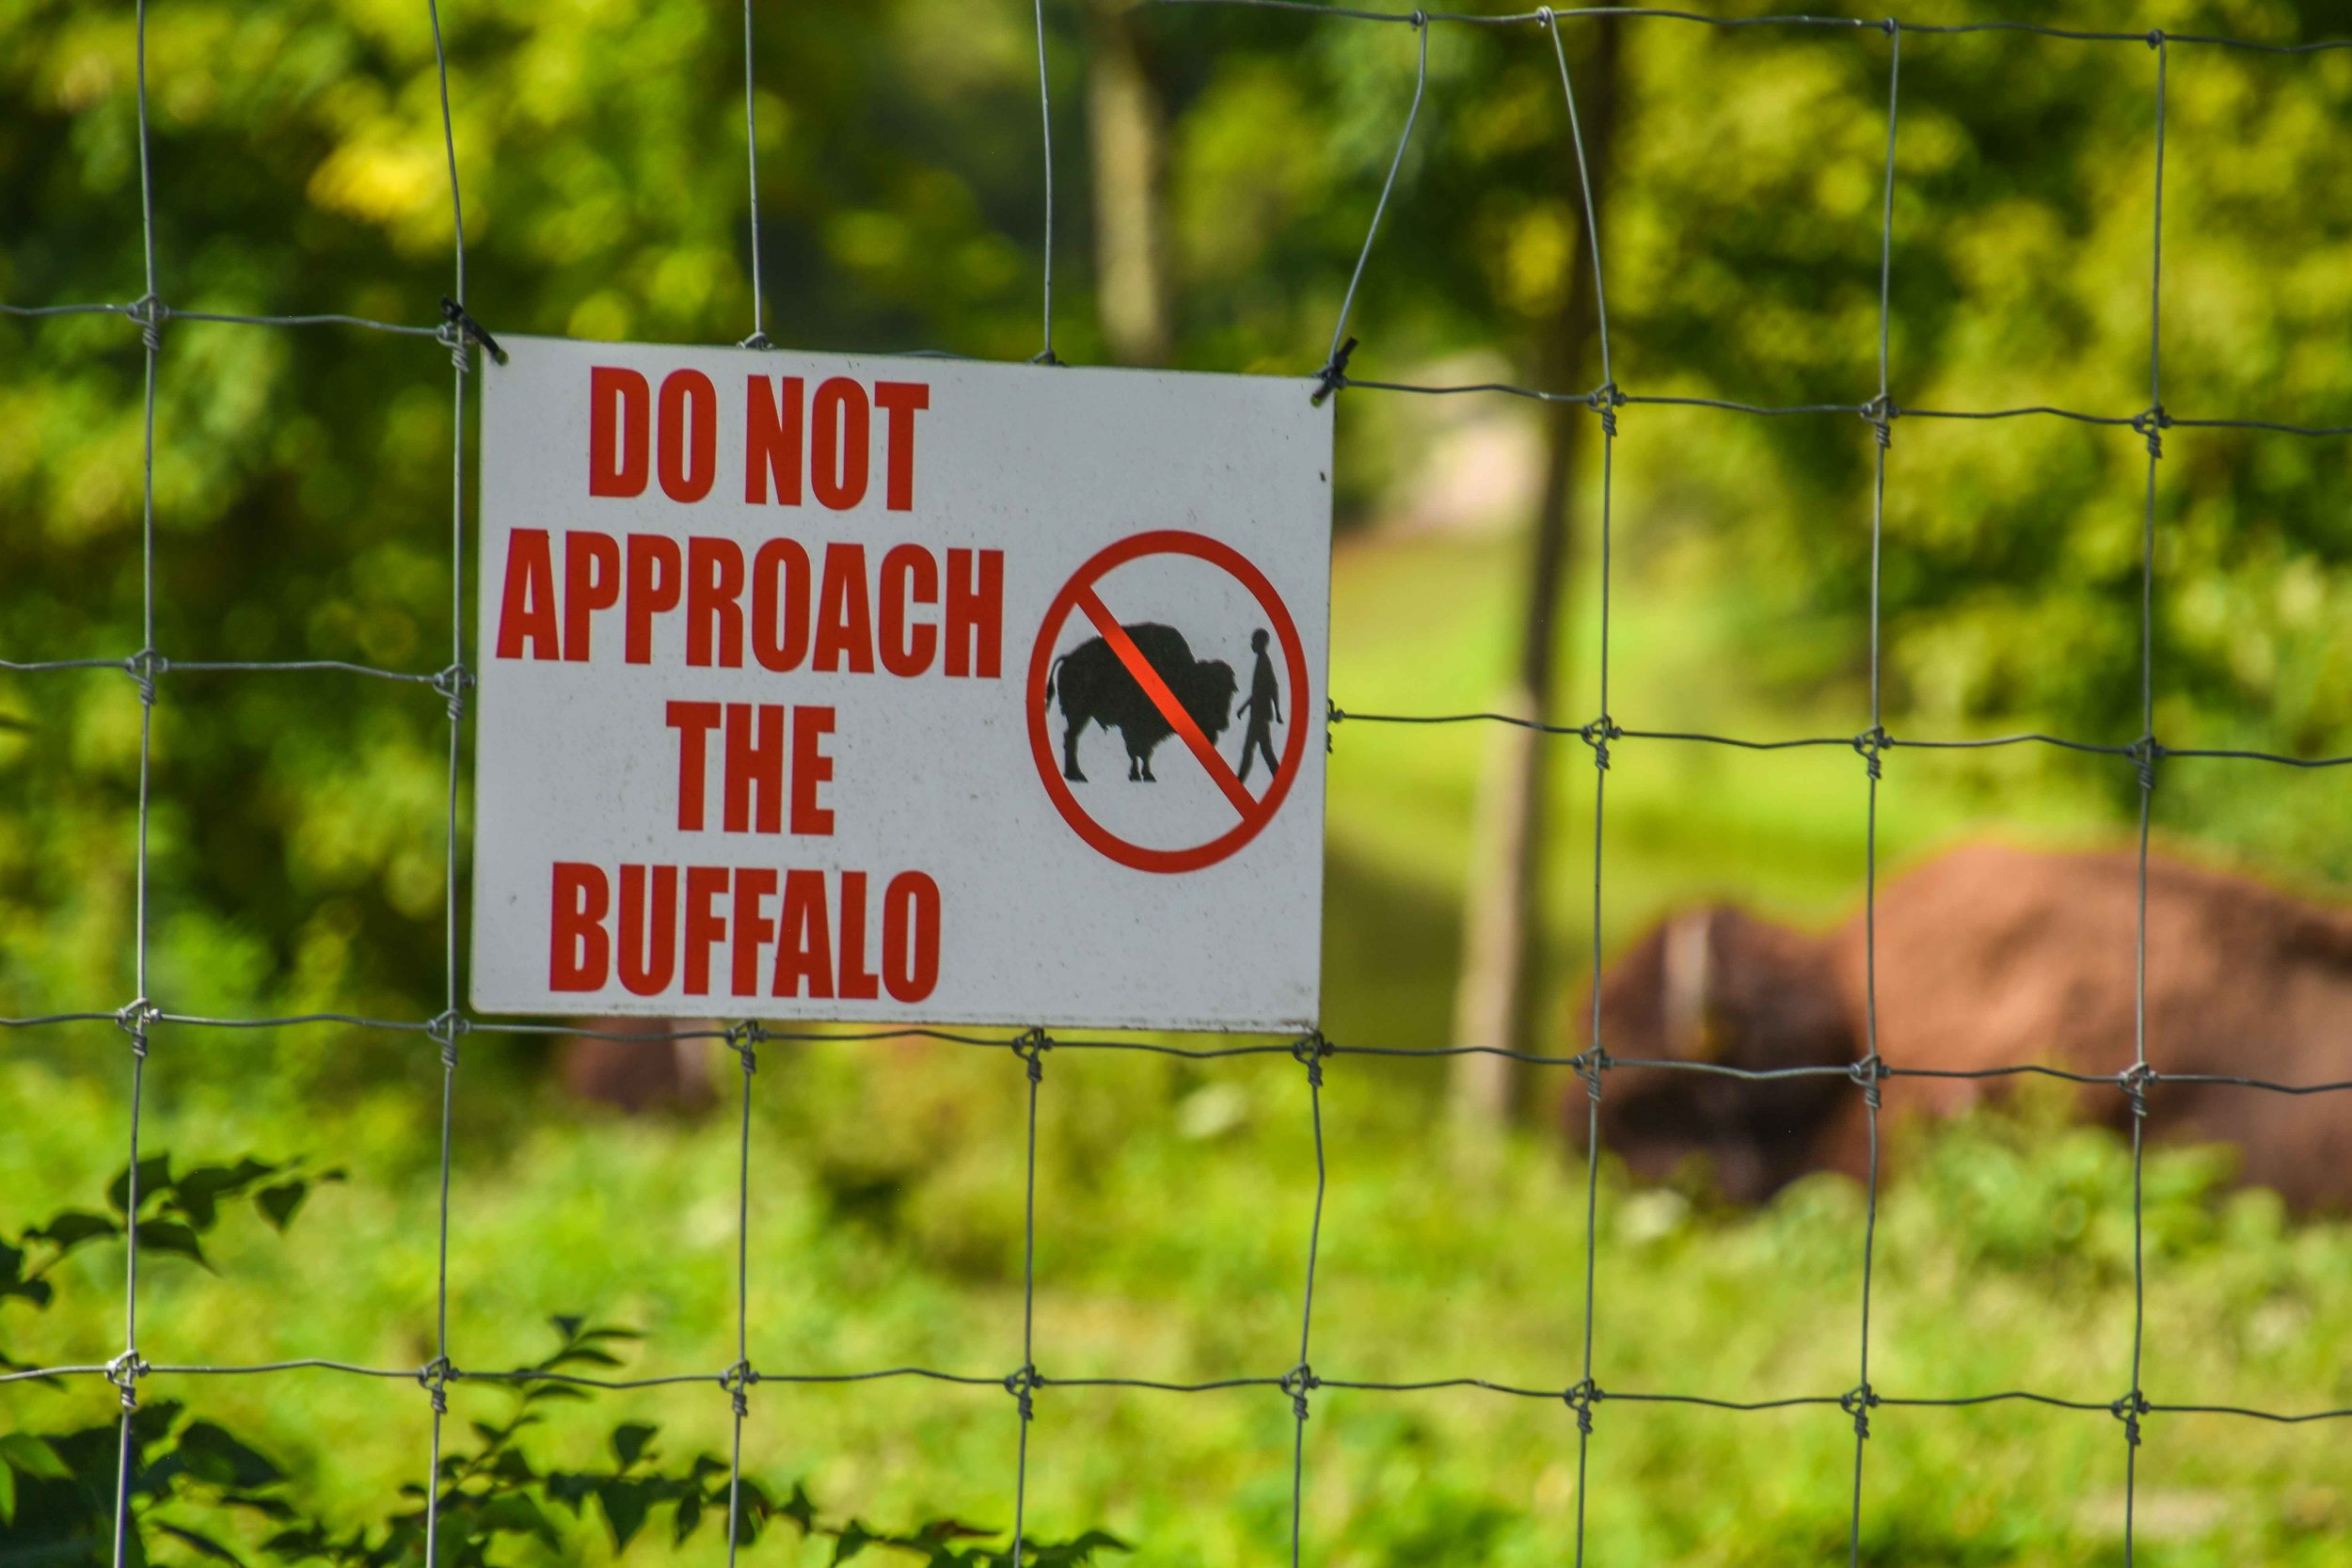 Between the 1st and 10th holes at Stonelick you will find a buffalo pen. Do not approach them. Approach the green instead.